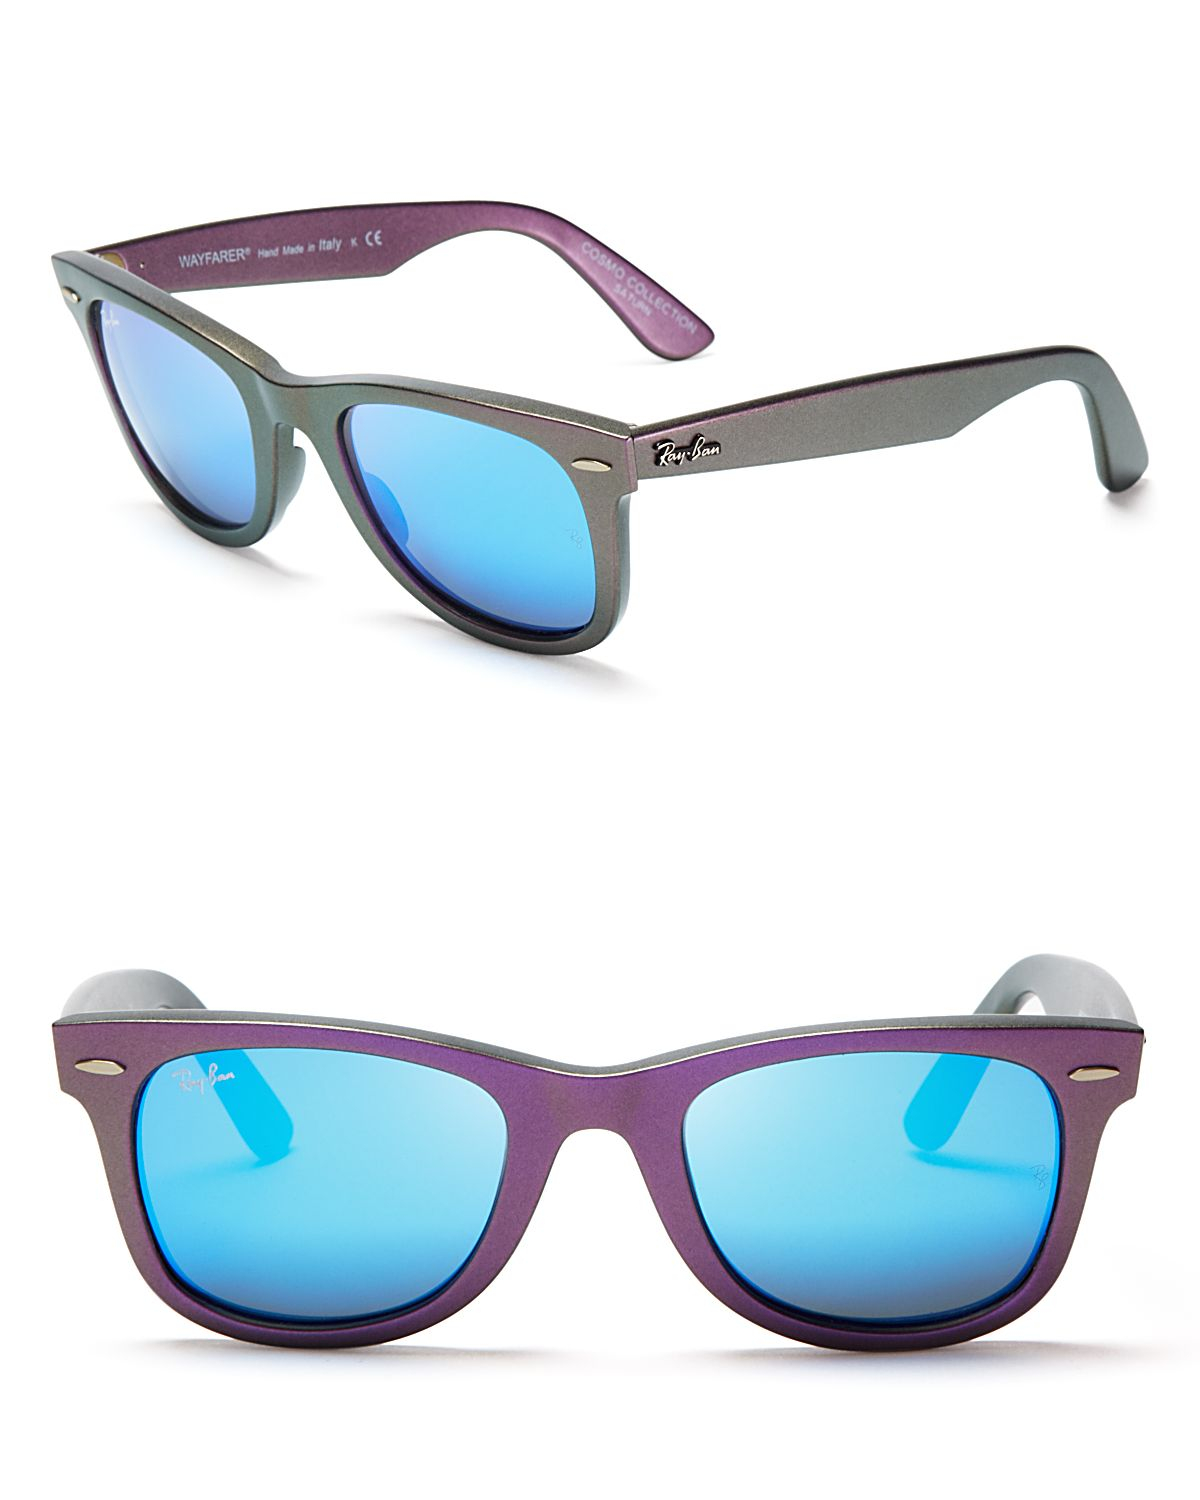 3b7648ad262b ... discount code for ray ban iridescent mirrored wayfarer sunglasses in  blue for men lyst 27f06 b4e3f ...